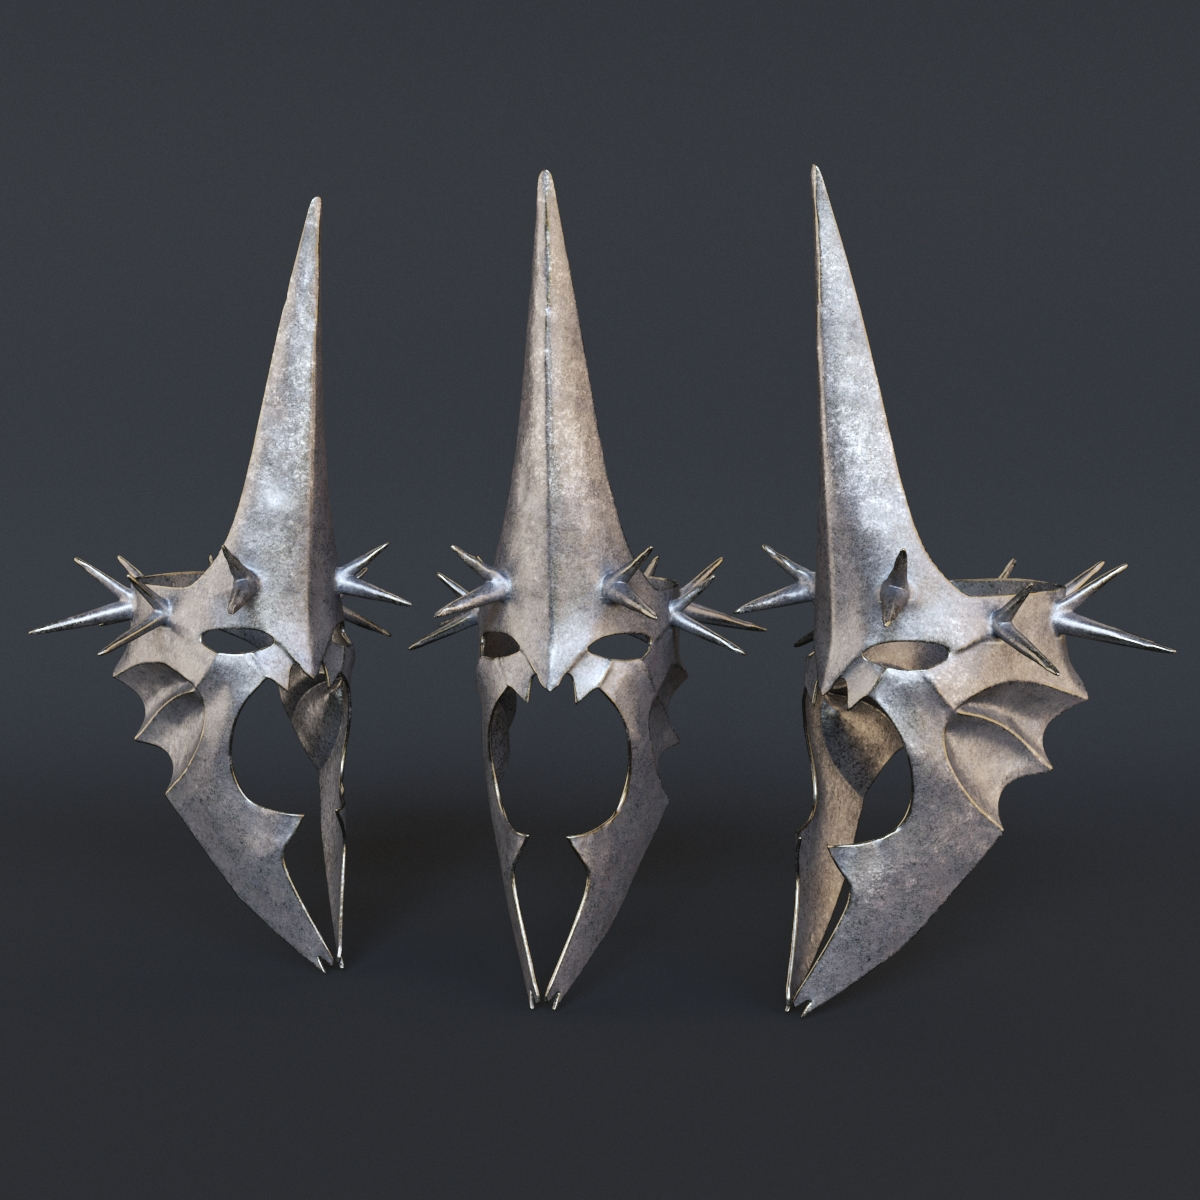 Łukasz Liszko - 3D - The Lord of the Rings Witchking helmet